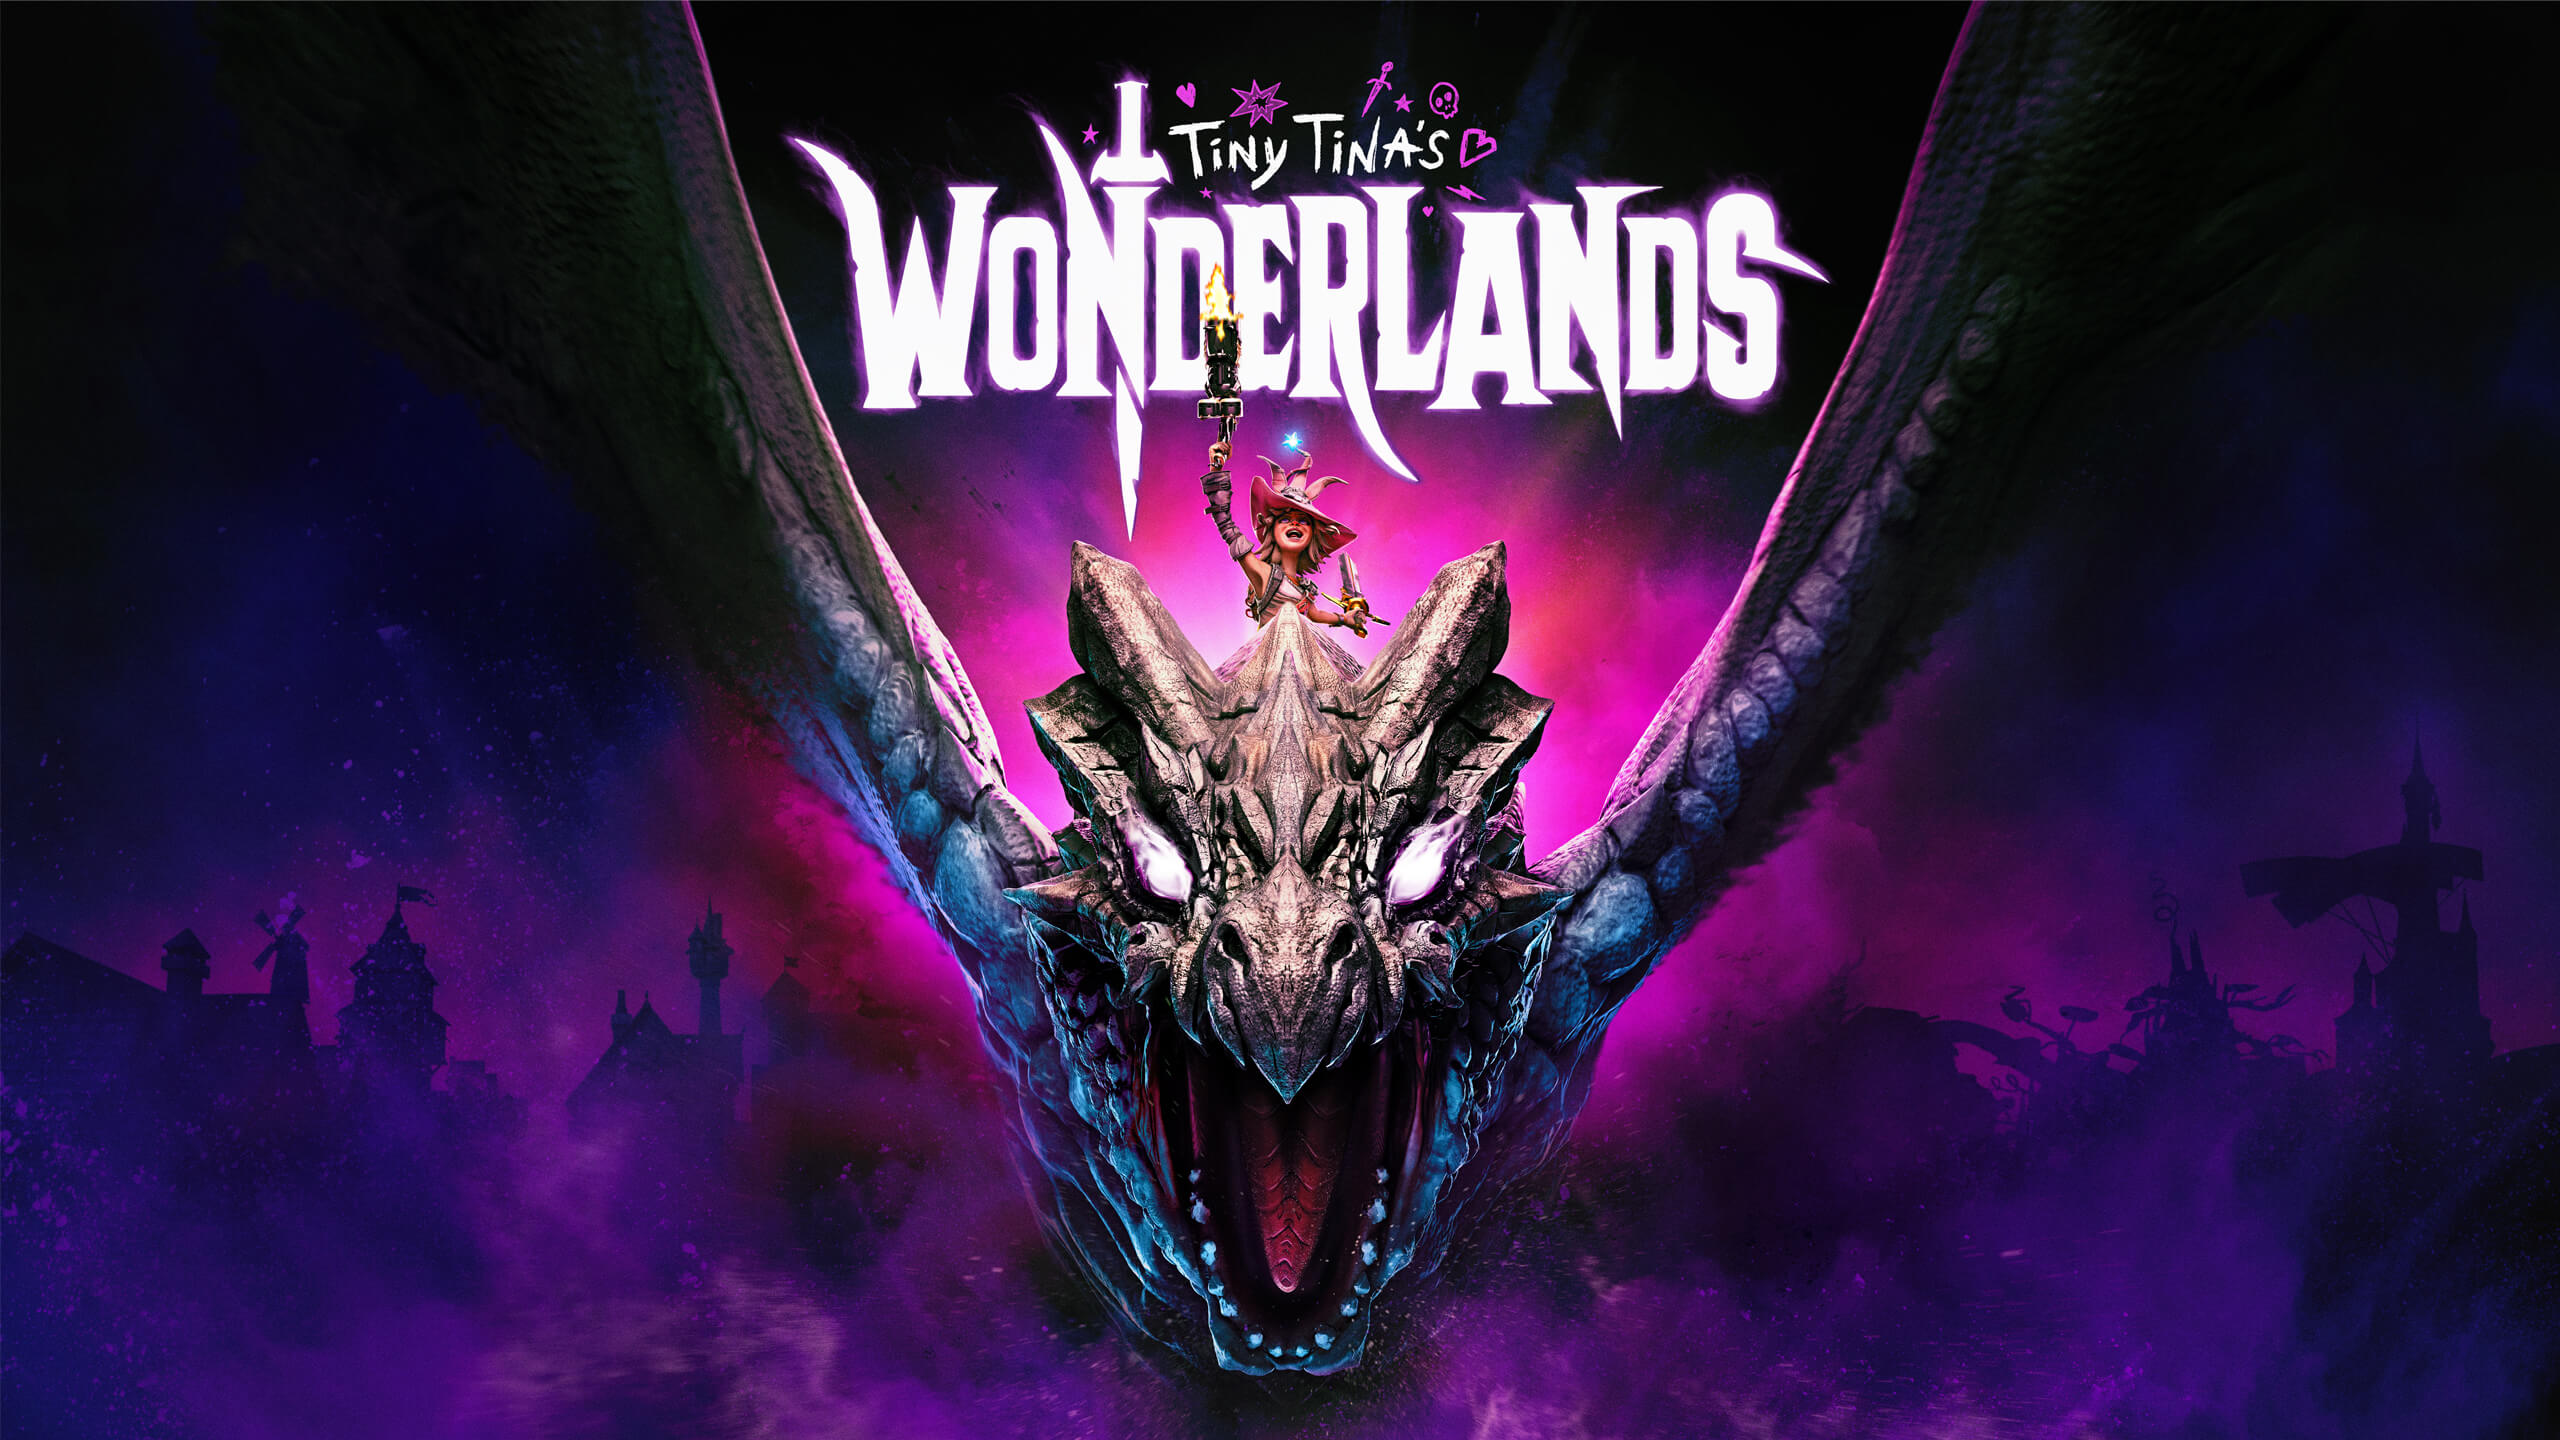 Pre-purchase Tiny Tina's Wonderlands on Epic Games Store